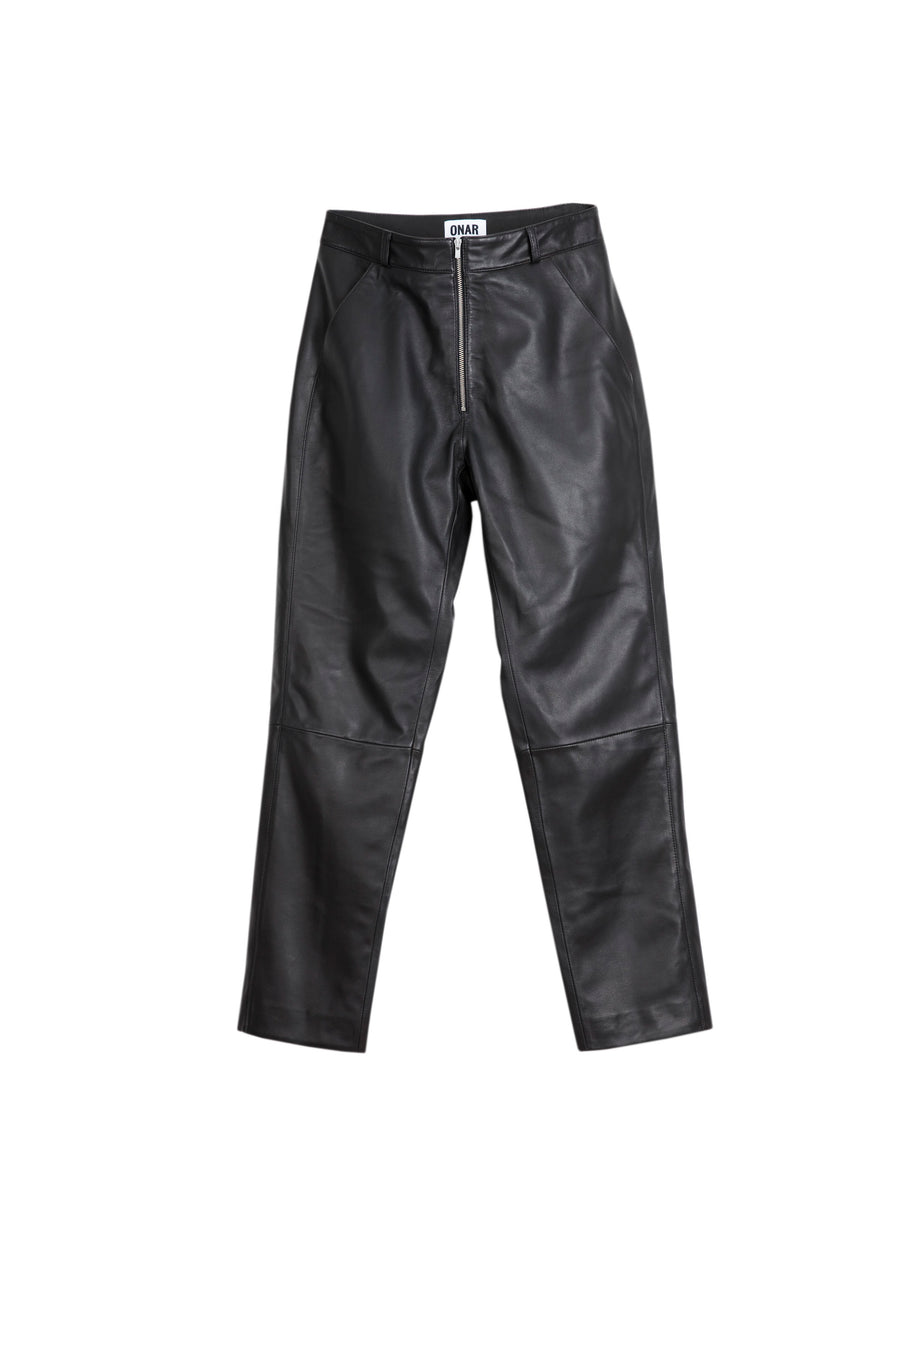 Stakra Trousers Black